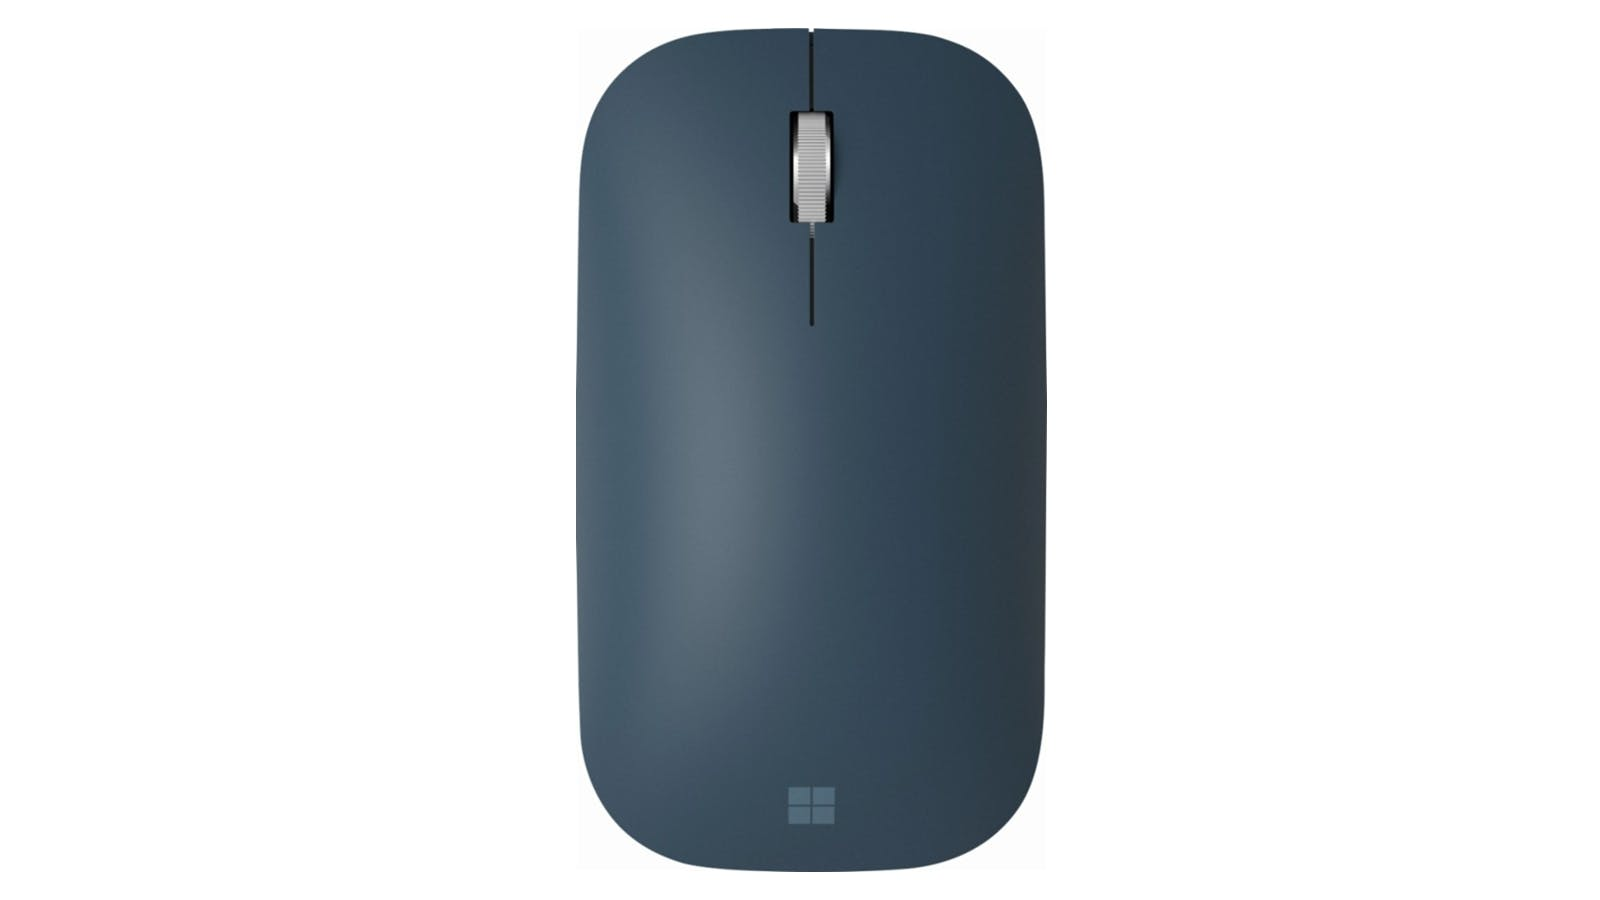 driver for microsoft wireless mouse 3600